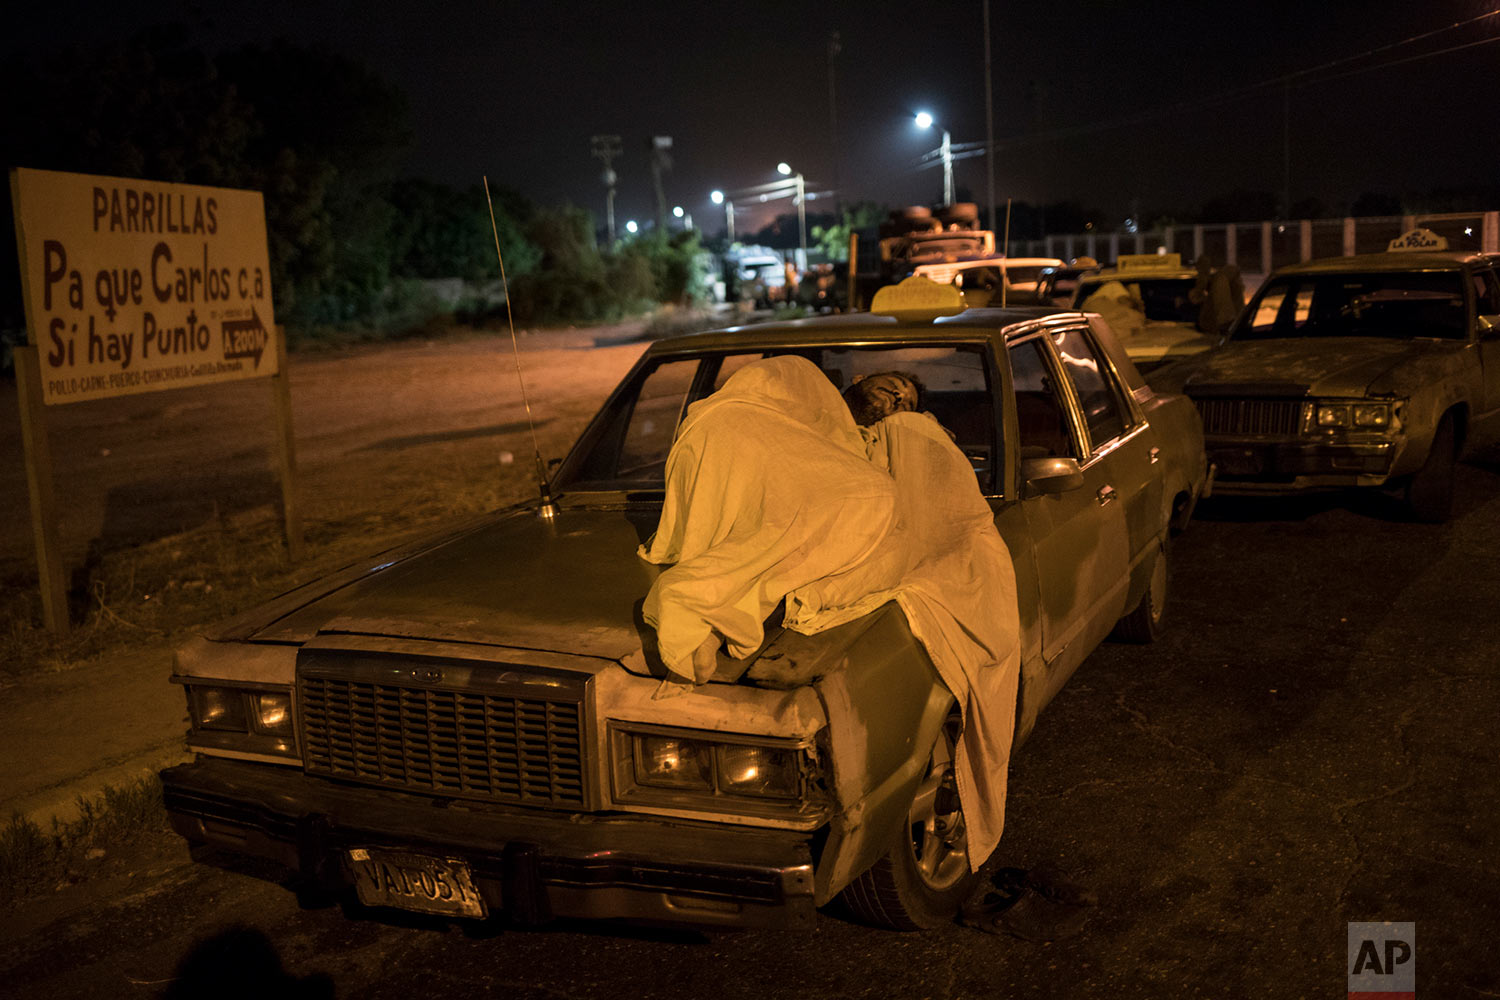 A man sleeps on top of his car as he waits in line to fill up outside a gas station in Maracaibo, Venezuela, May 23, 2019. (AP Photo/Rodrigo Abd)